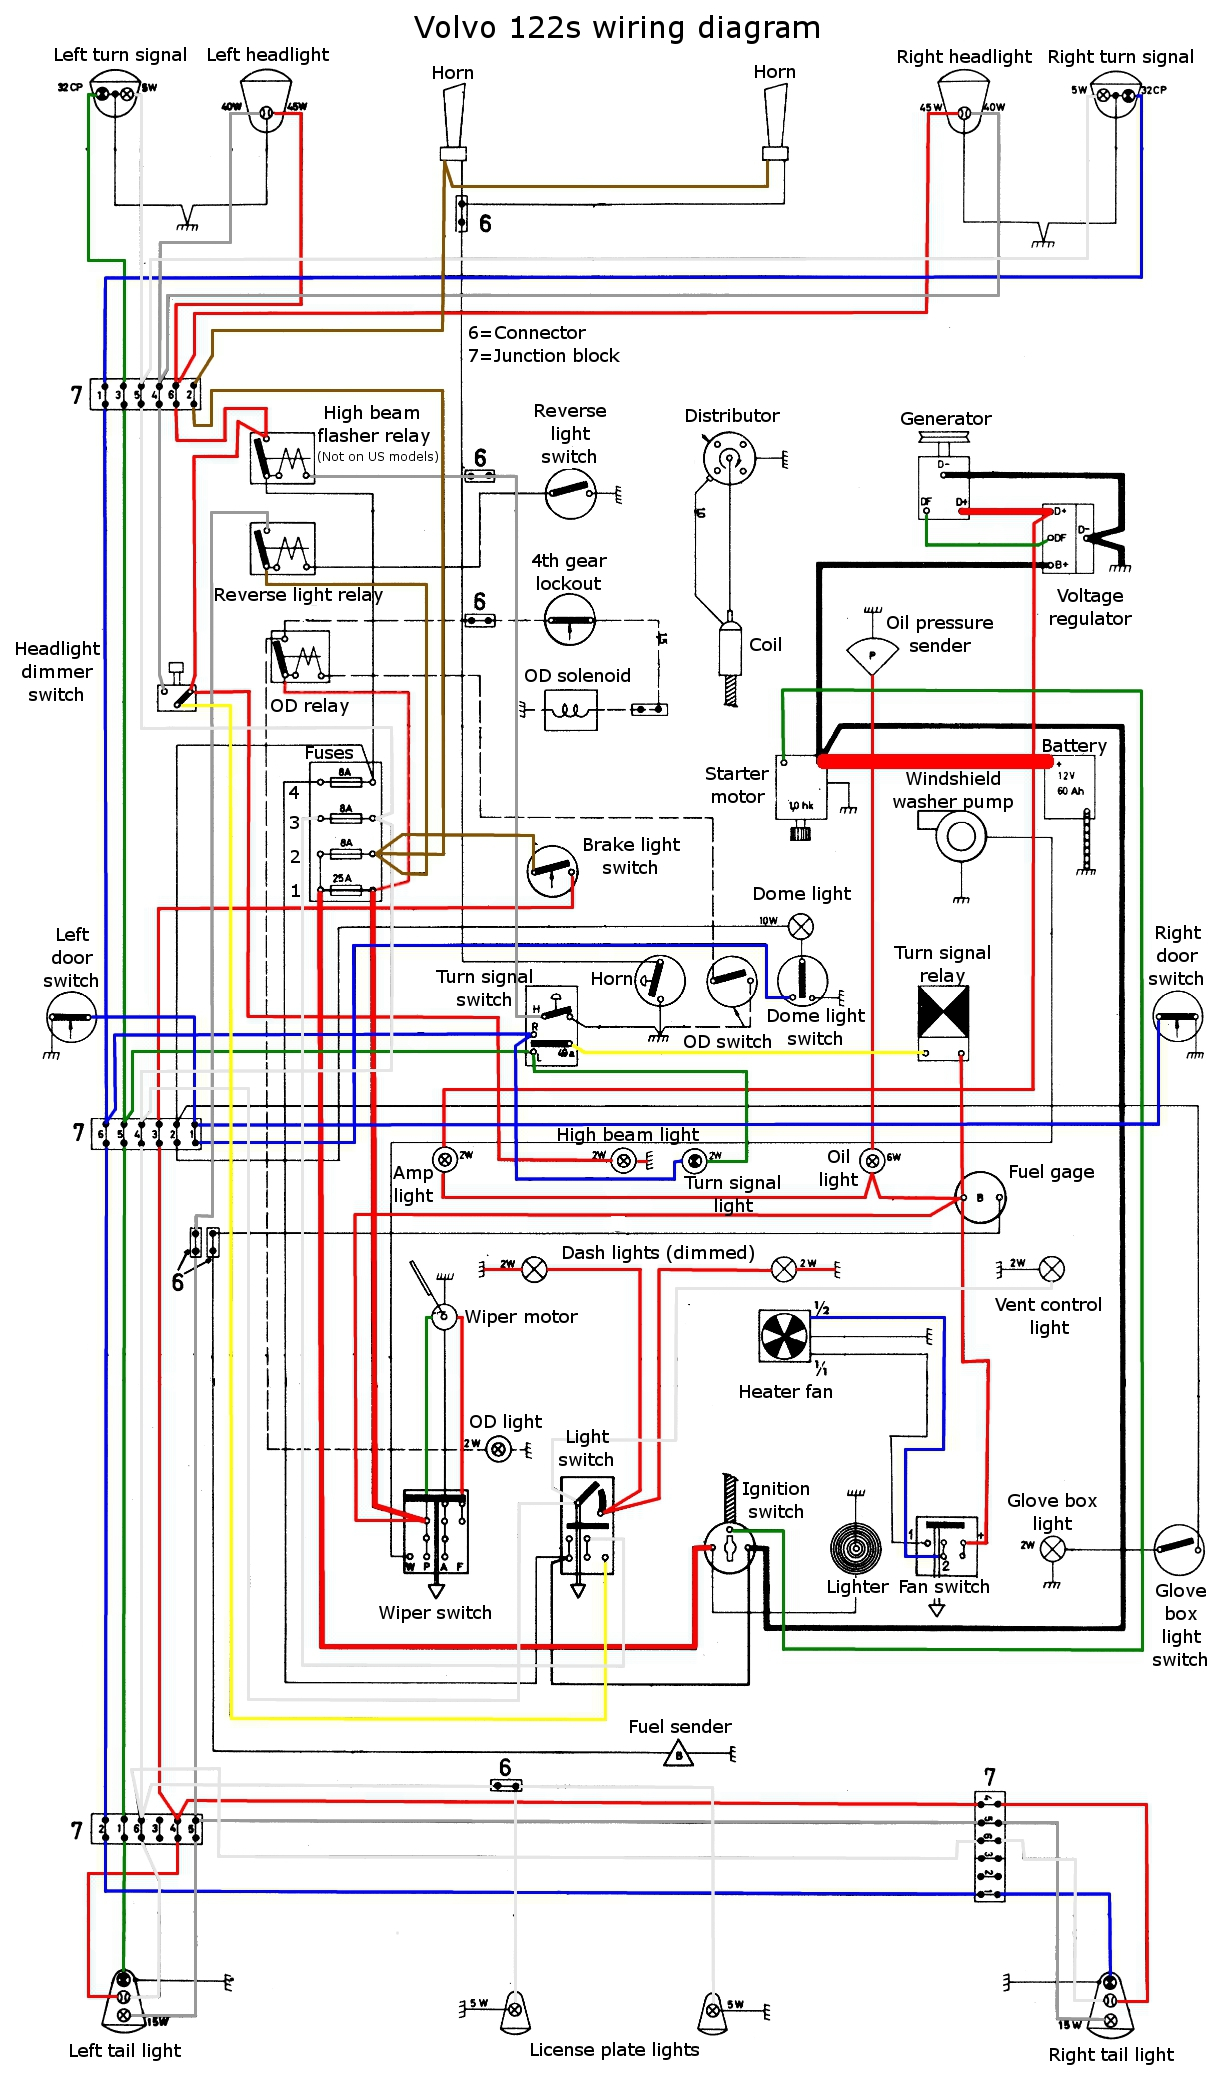 122 wiring diagram color 2005 volvo s40 wiring diagram volvo s40 steering diagram \u2022 wiring 2004 volvo xc90 wiring diagrams at virtualis.co